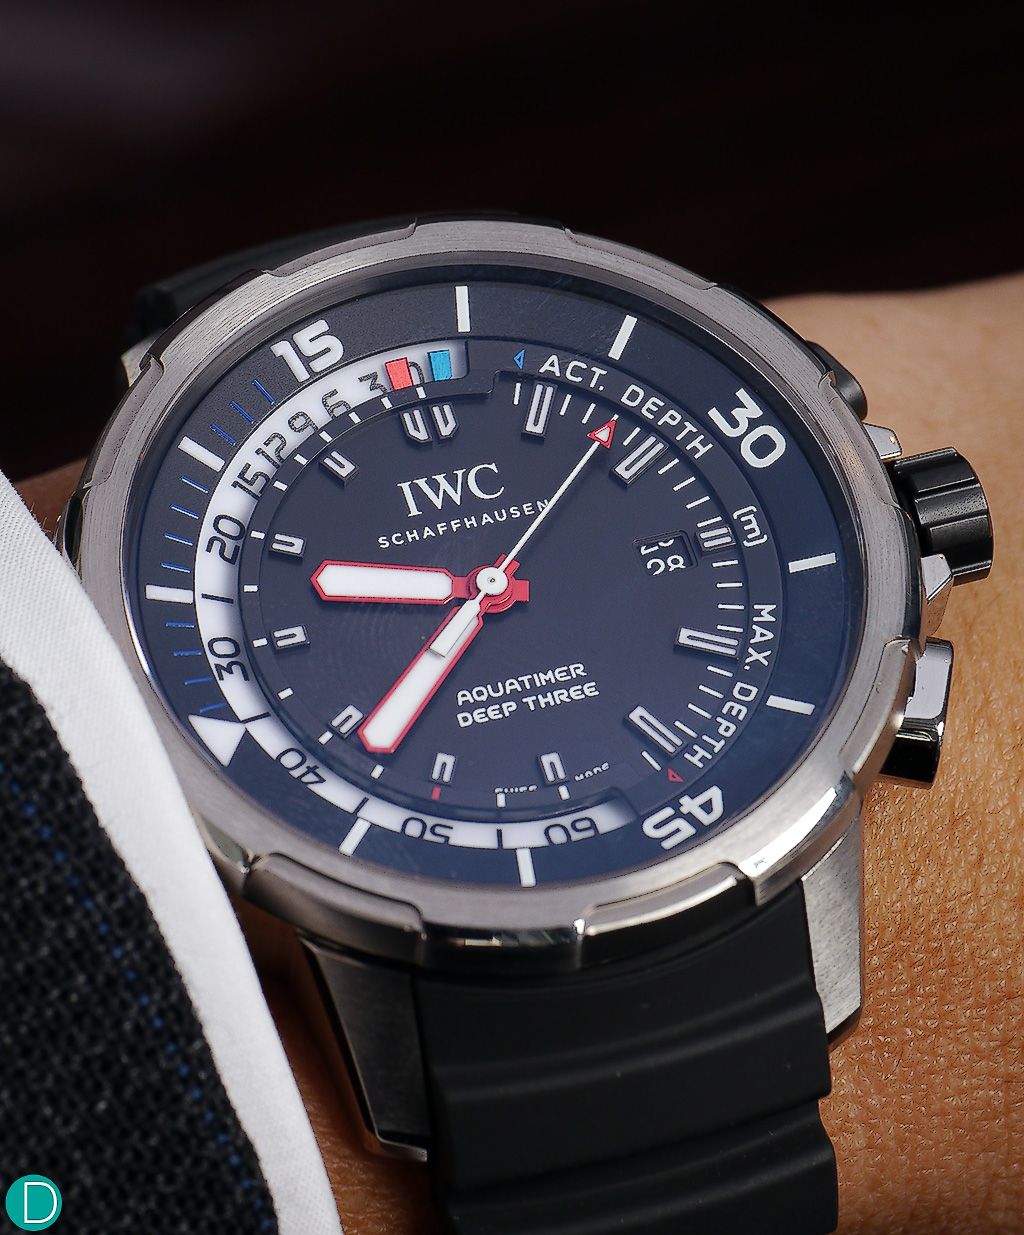 The IWC Aquatimer Deep 3, which features a mechanical depth gauge.